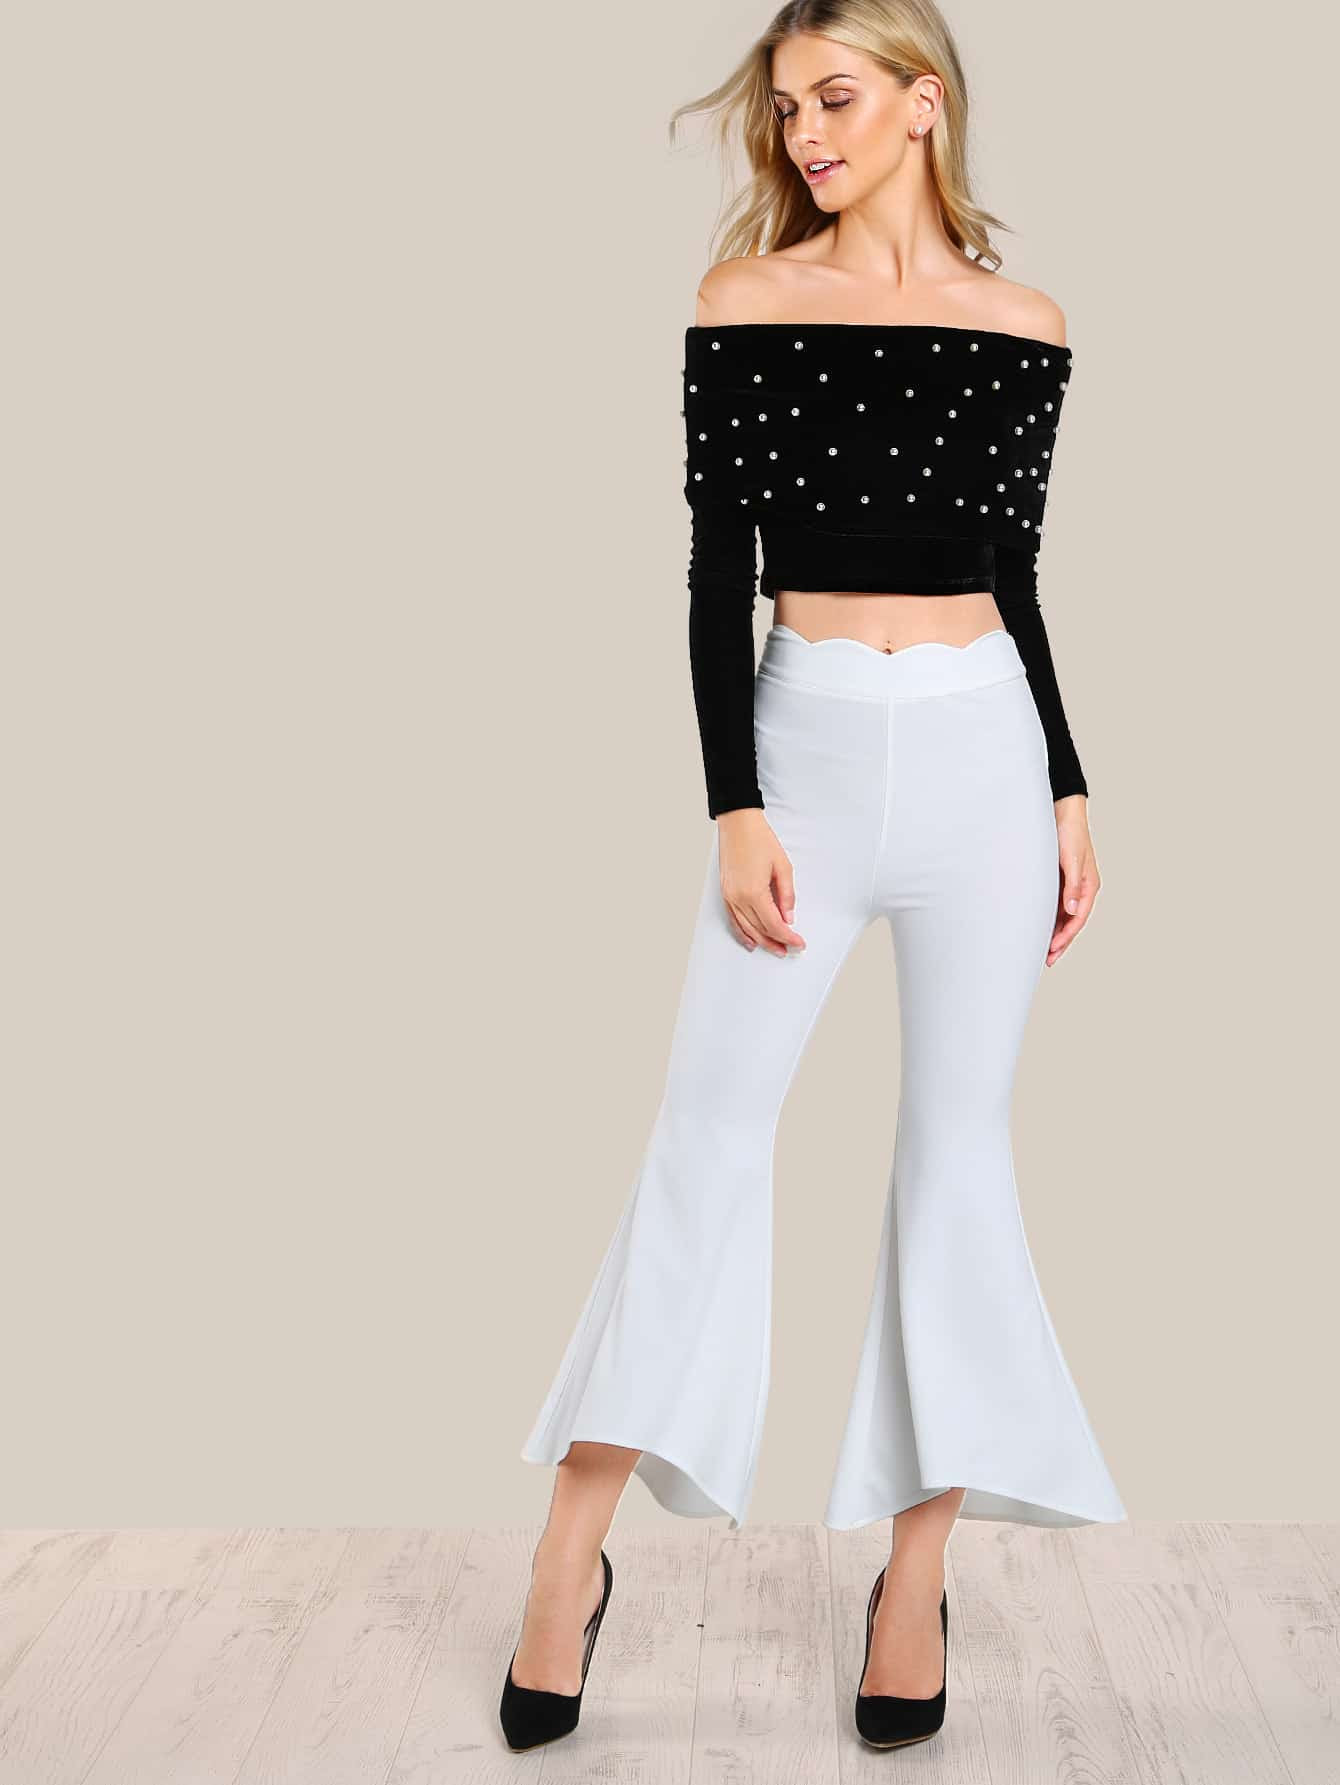 Shein: Wish List